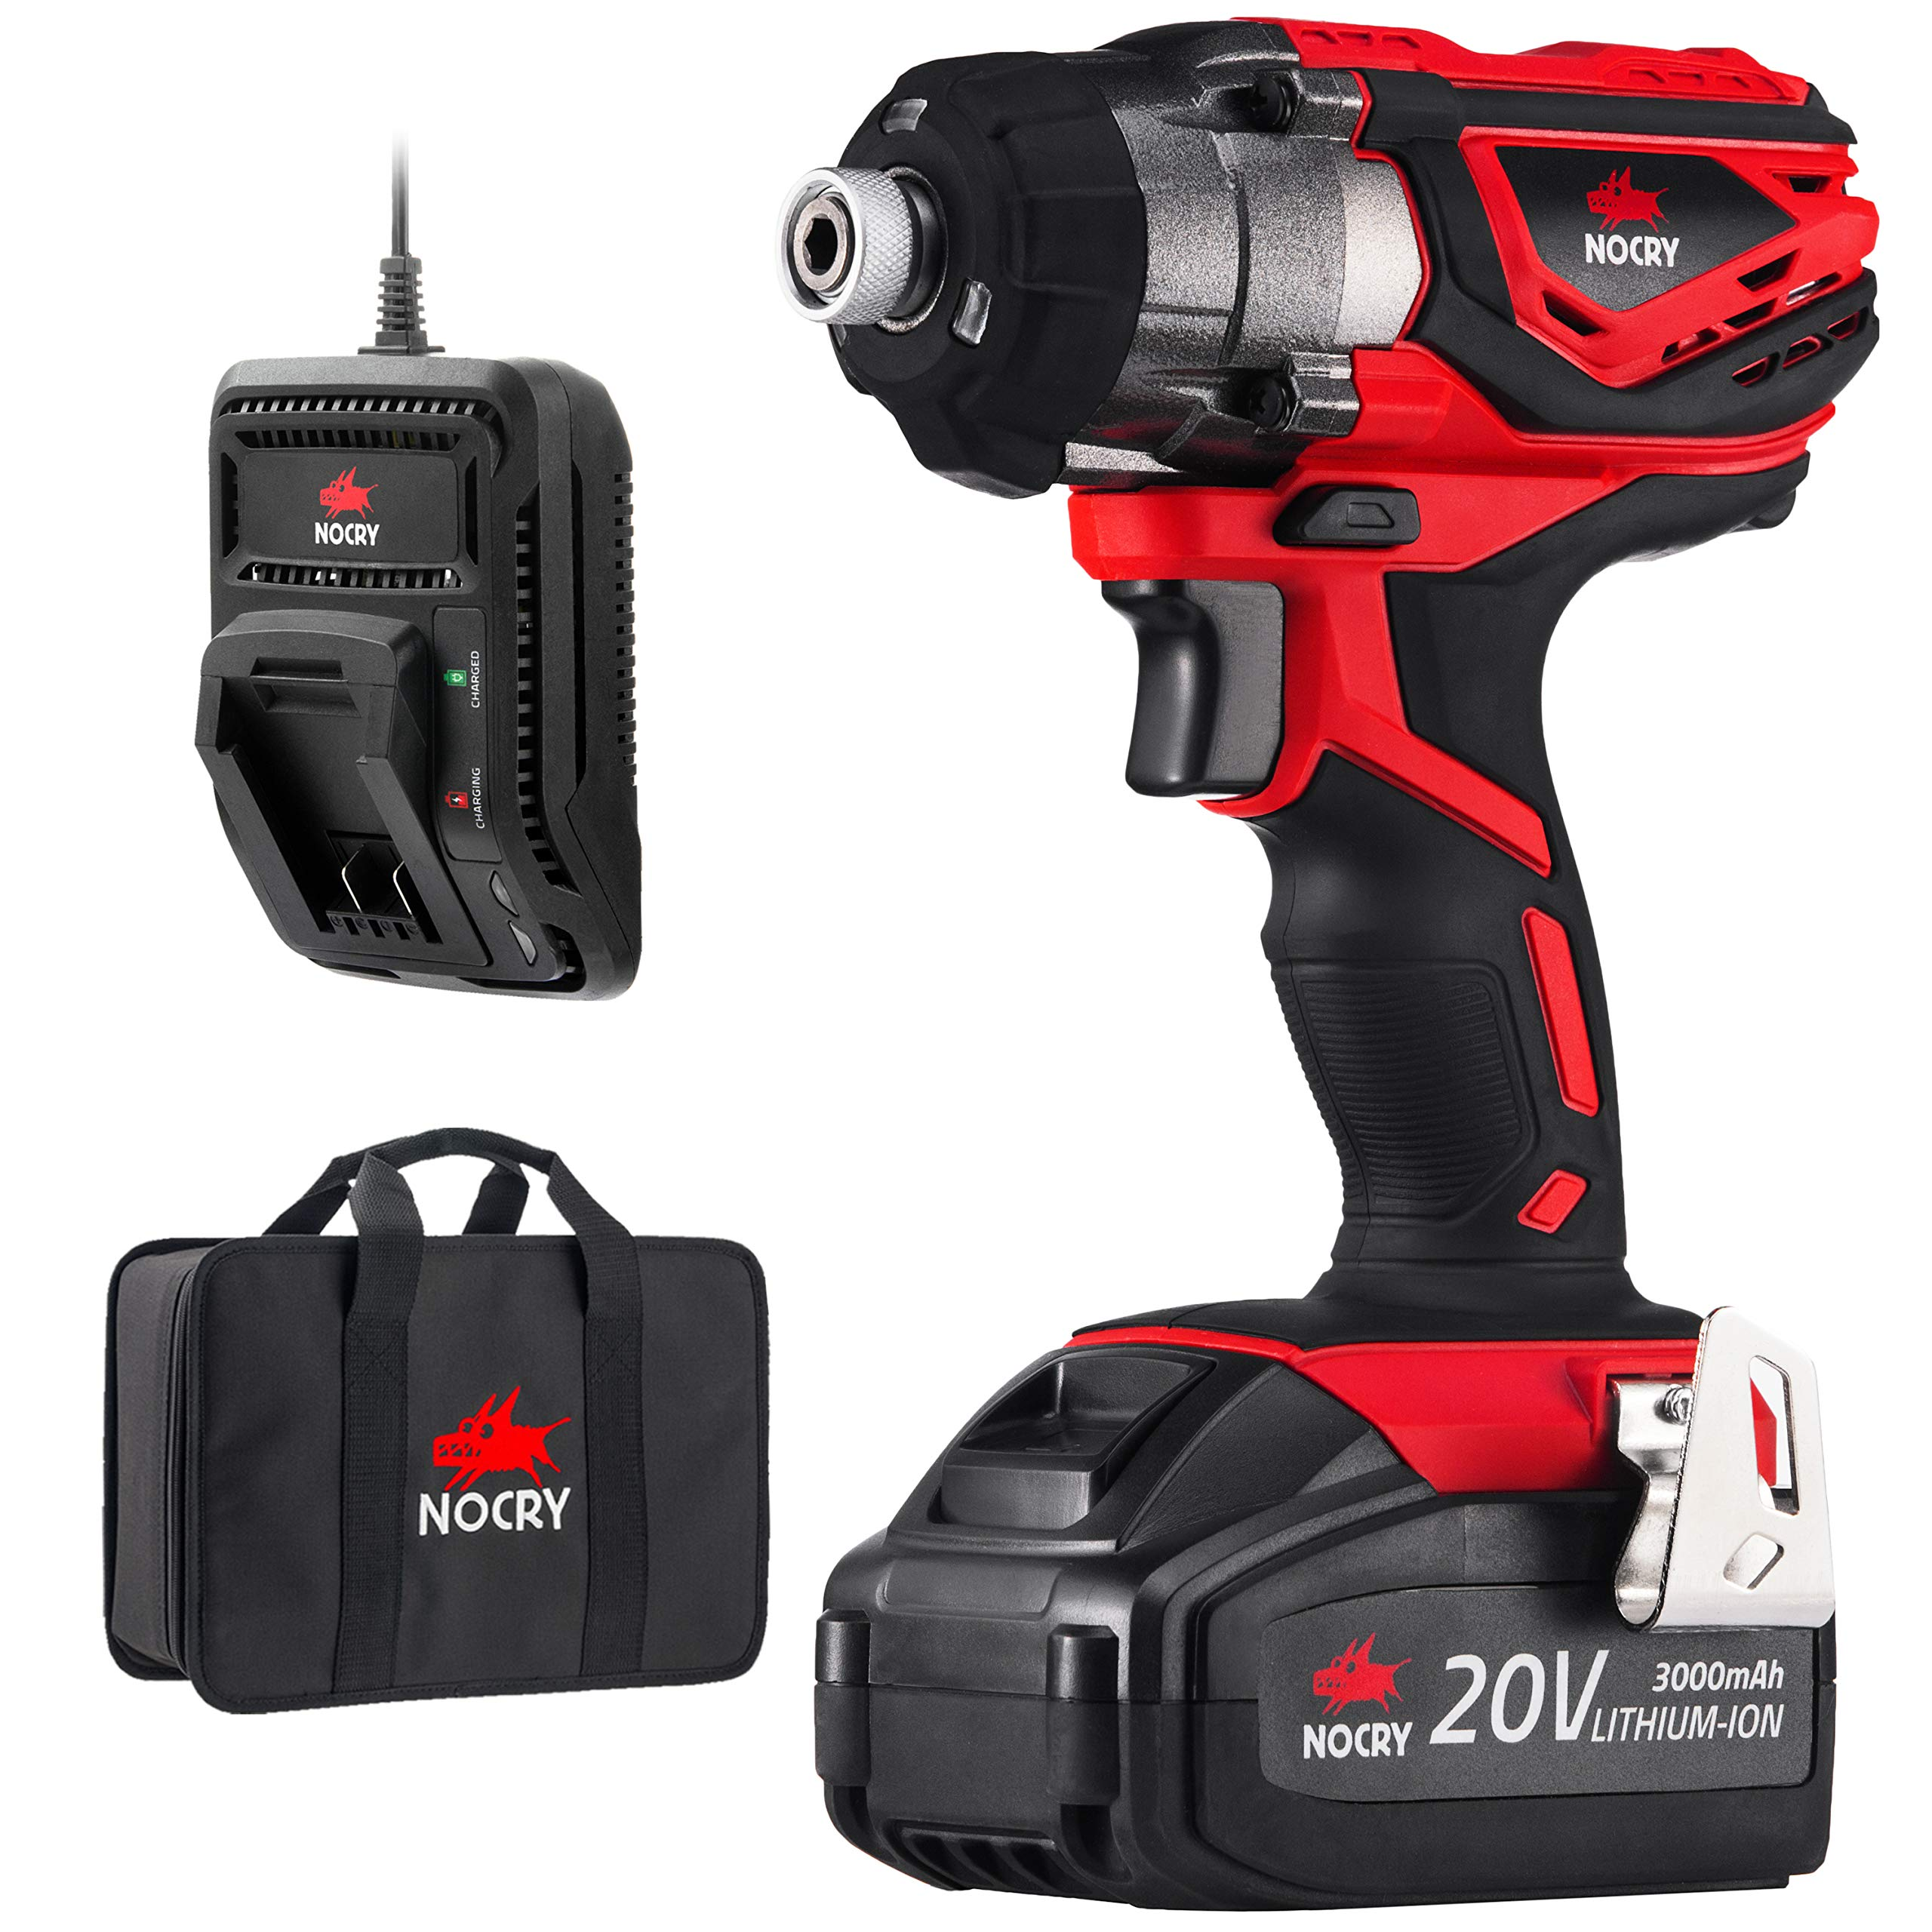 NoCry 20V Cordless Impact Driver Kit - 120 ft-lb (160 N.m) Torque, 3000 Max RPM/IPM, 1/4 inch Hex Chuck, LED Work Light, Belt Clip; 3.0 Ah Battery, Fast Charger & Carrying Case Included by NoCry (Image #1)